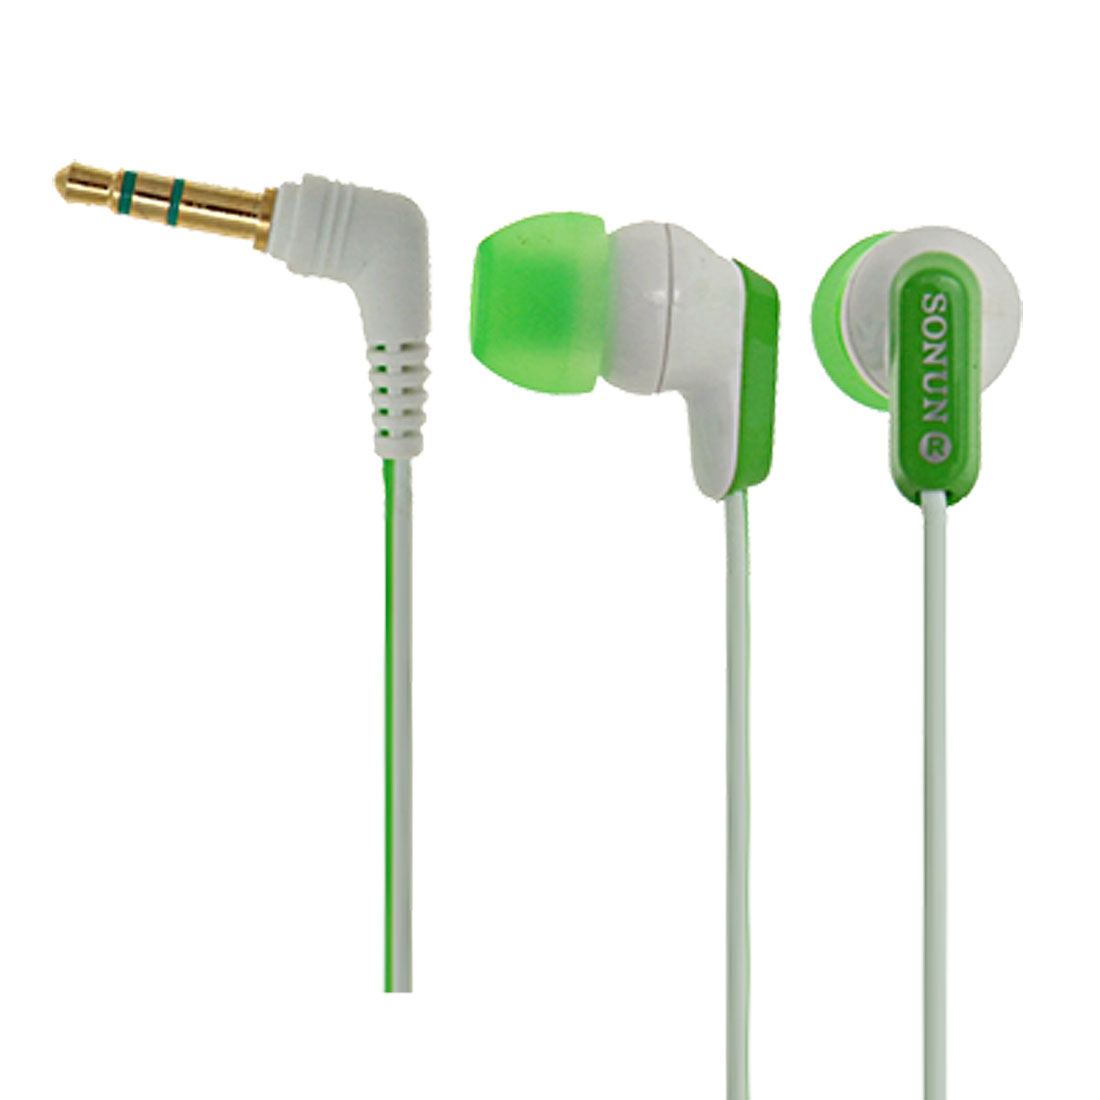 Attractive Green Stylish Gold-plated 3.5mm Stereo Earphone